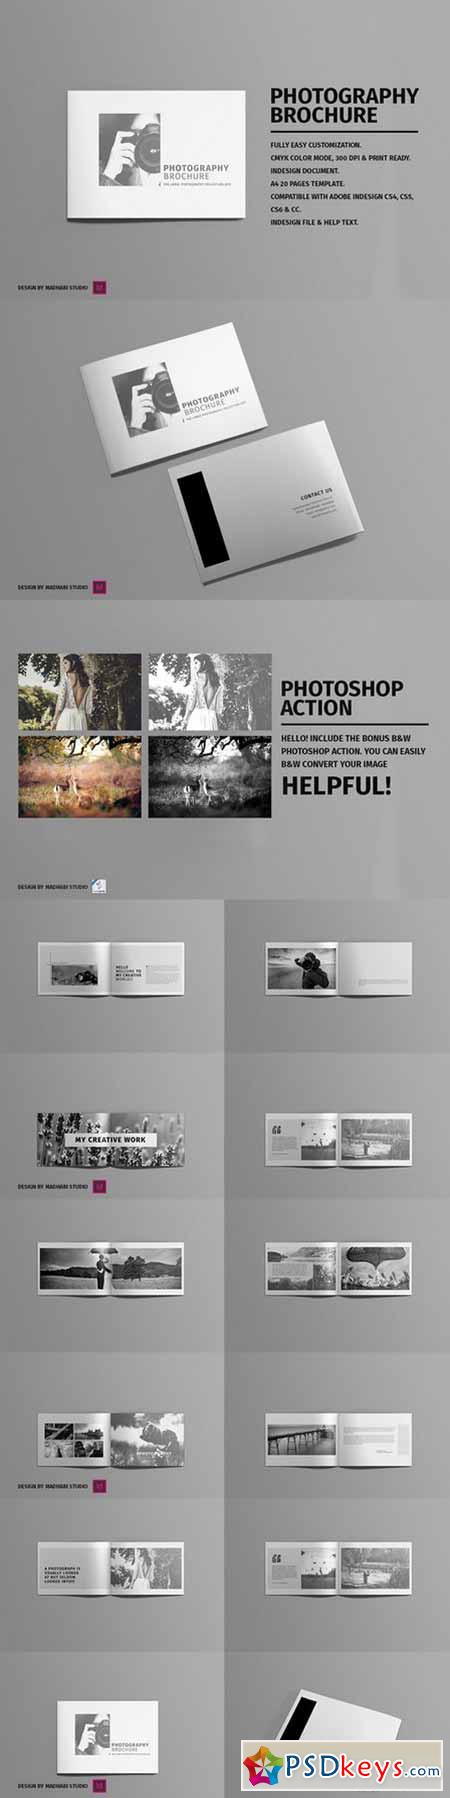 Minimal Photography Brochure Vol 01 342464